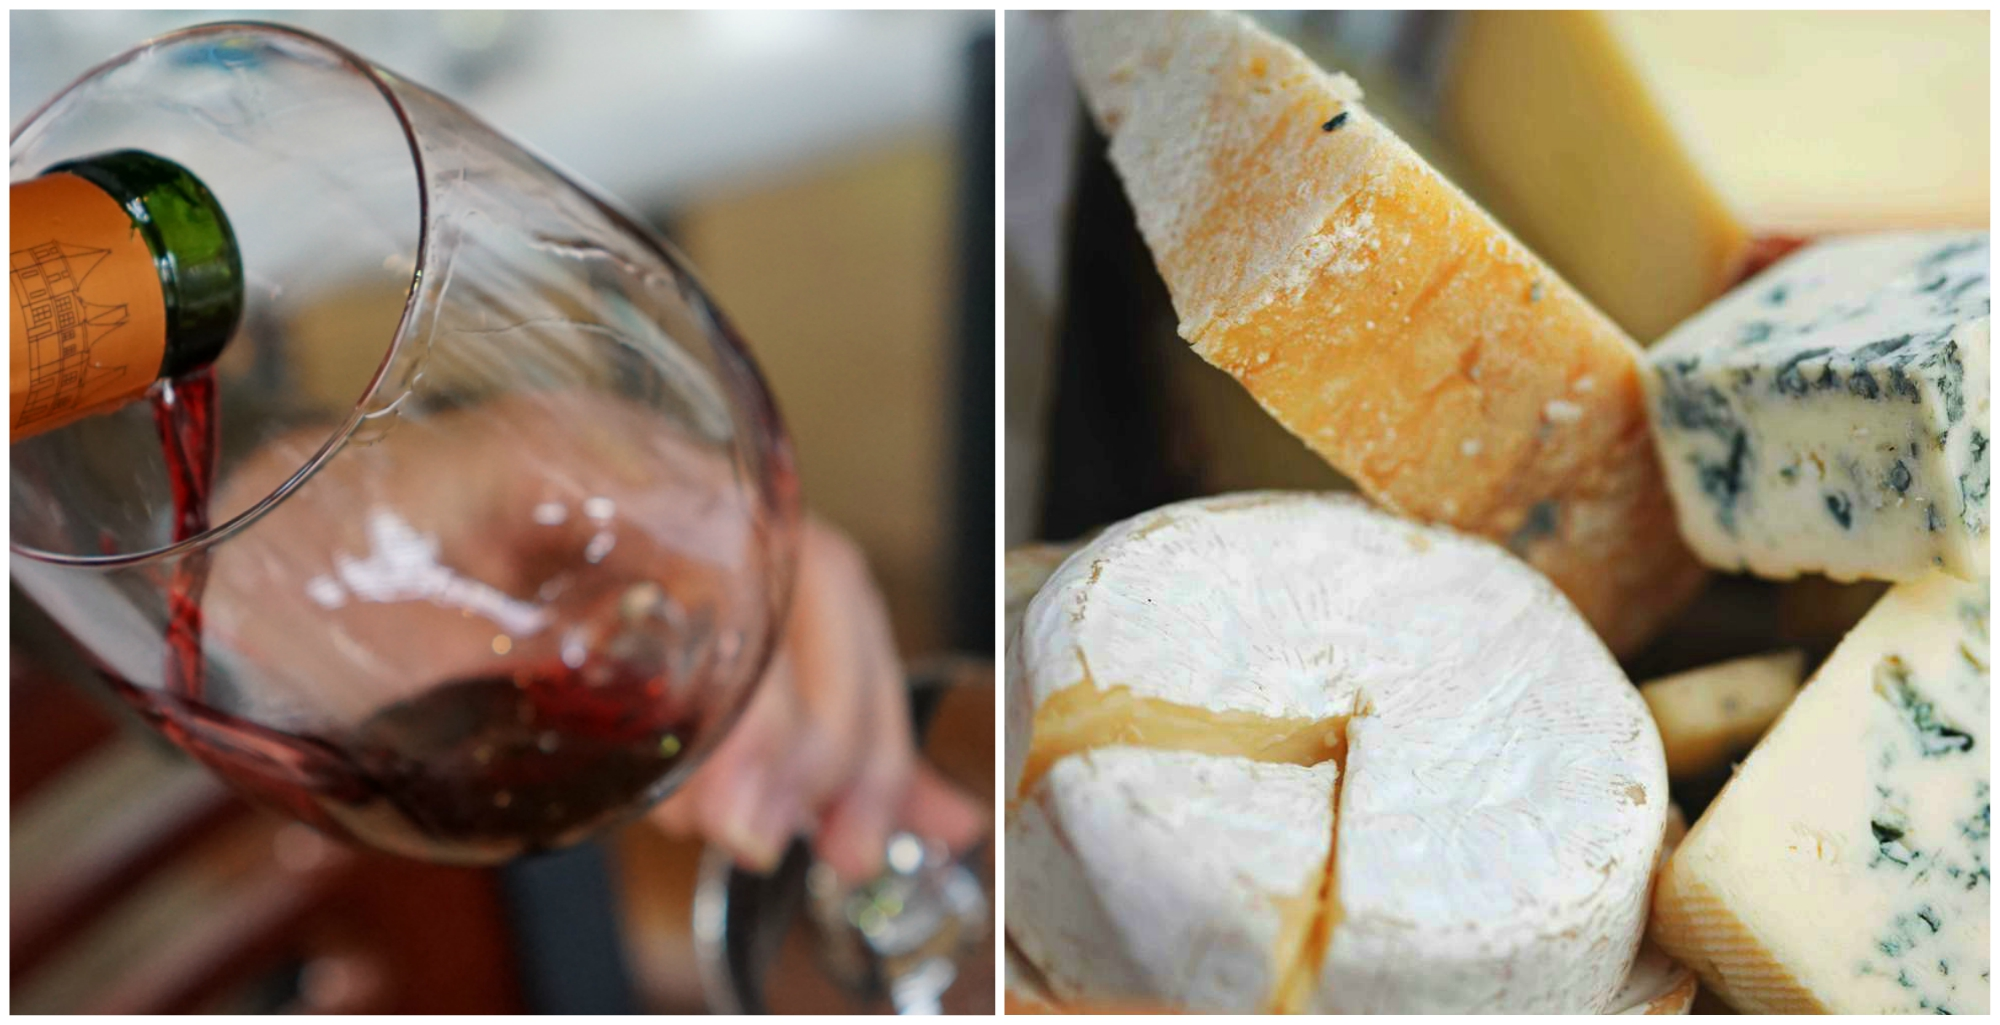 If you missed the chance to reserve a seat at the Bordeaux Dinner, don't worry! This is your chance to become truly familiar with these spectacular wines, plus cheeses to pair!